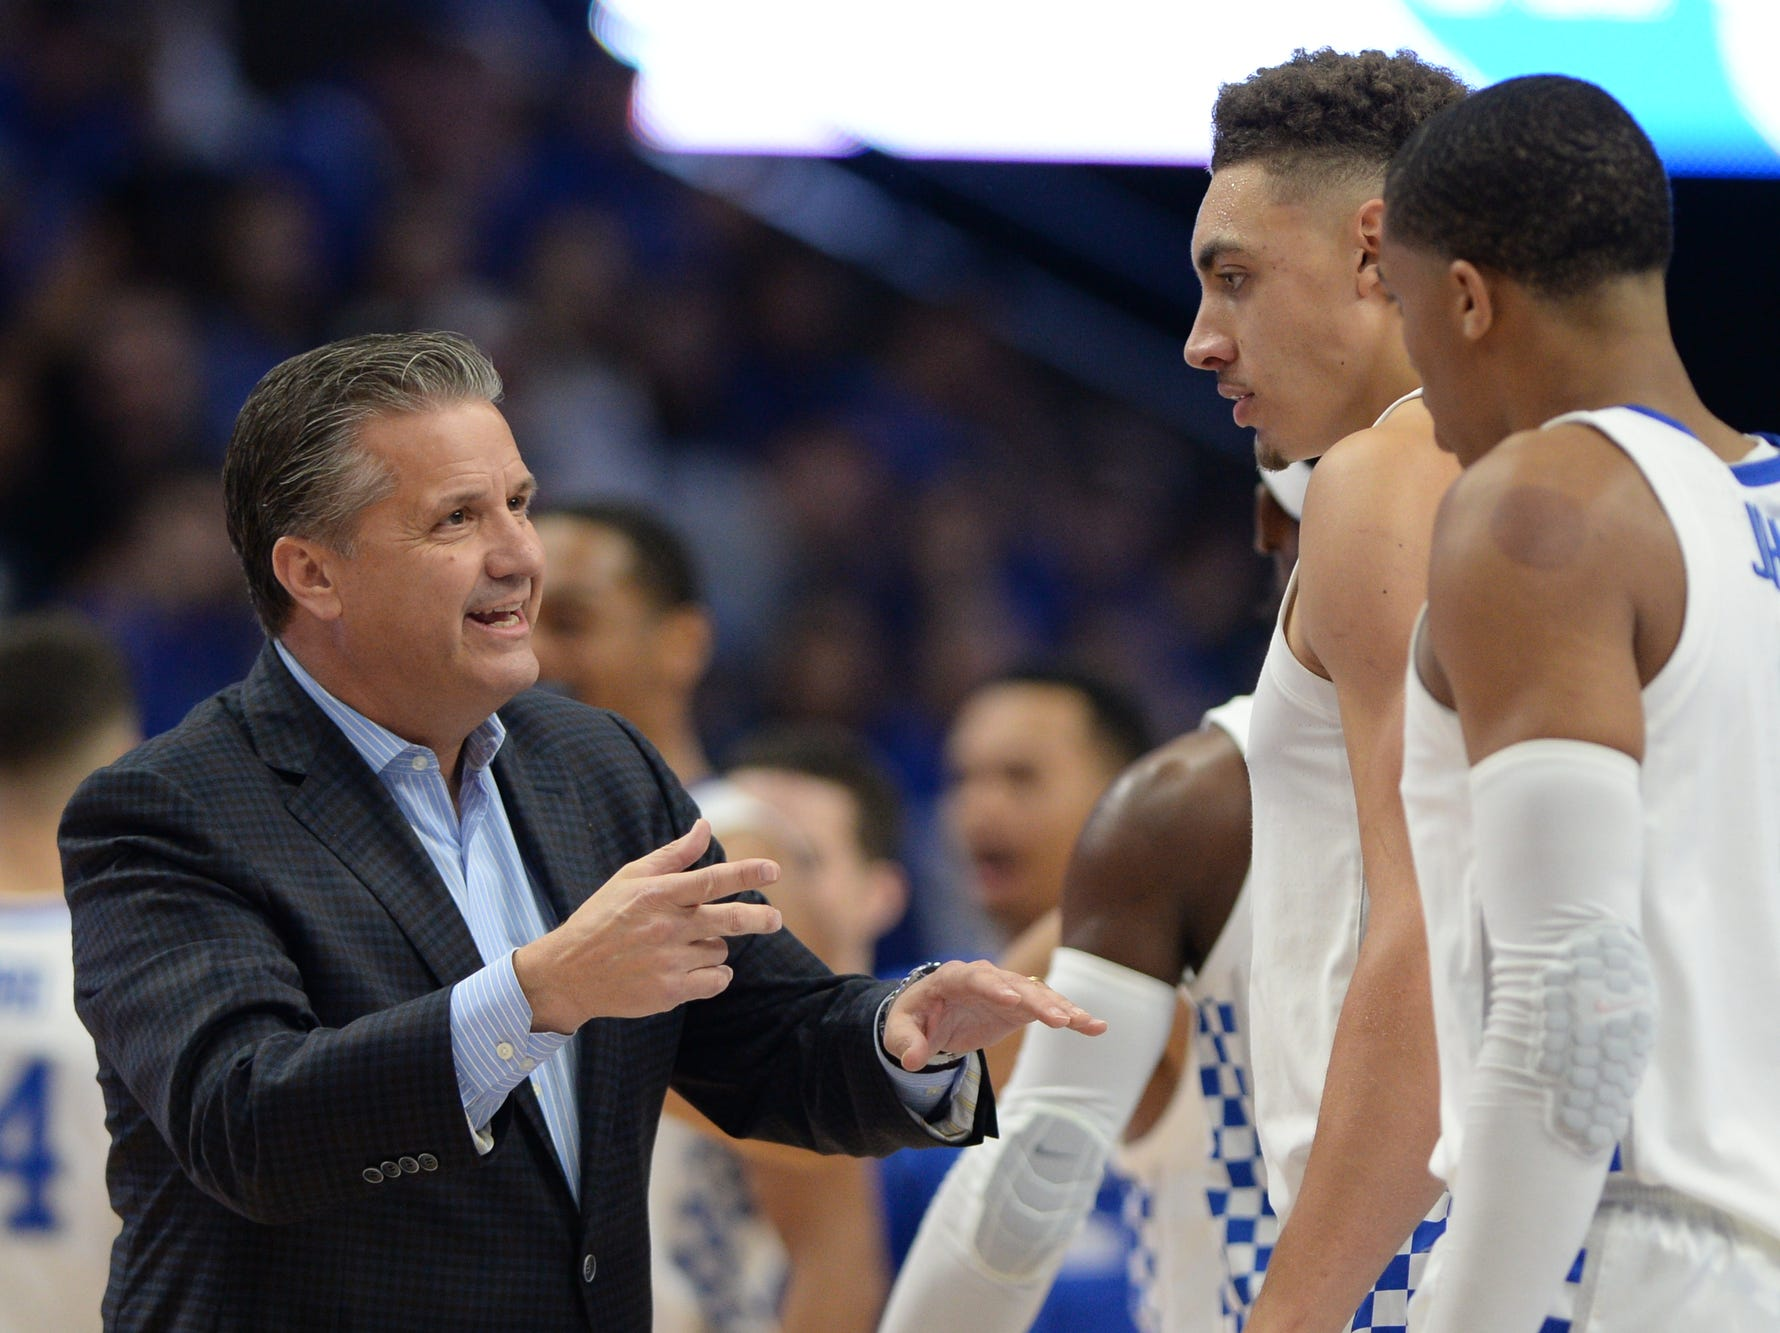 UK head coach John Calipari talks with Reid Travis and Keldon Johnson during the University of Kentucky basketball game against Transylvania at Rupp Arena in Lexington on Friday, Oct. 26, 2018.